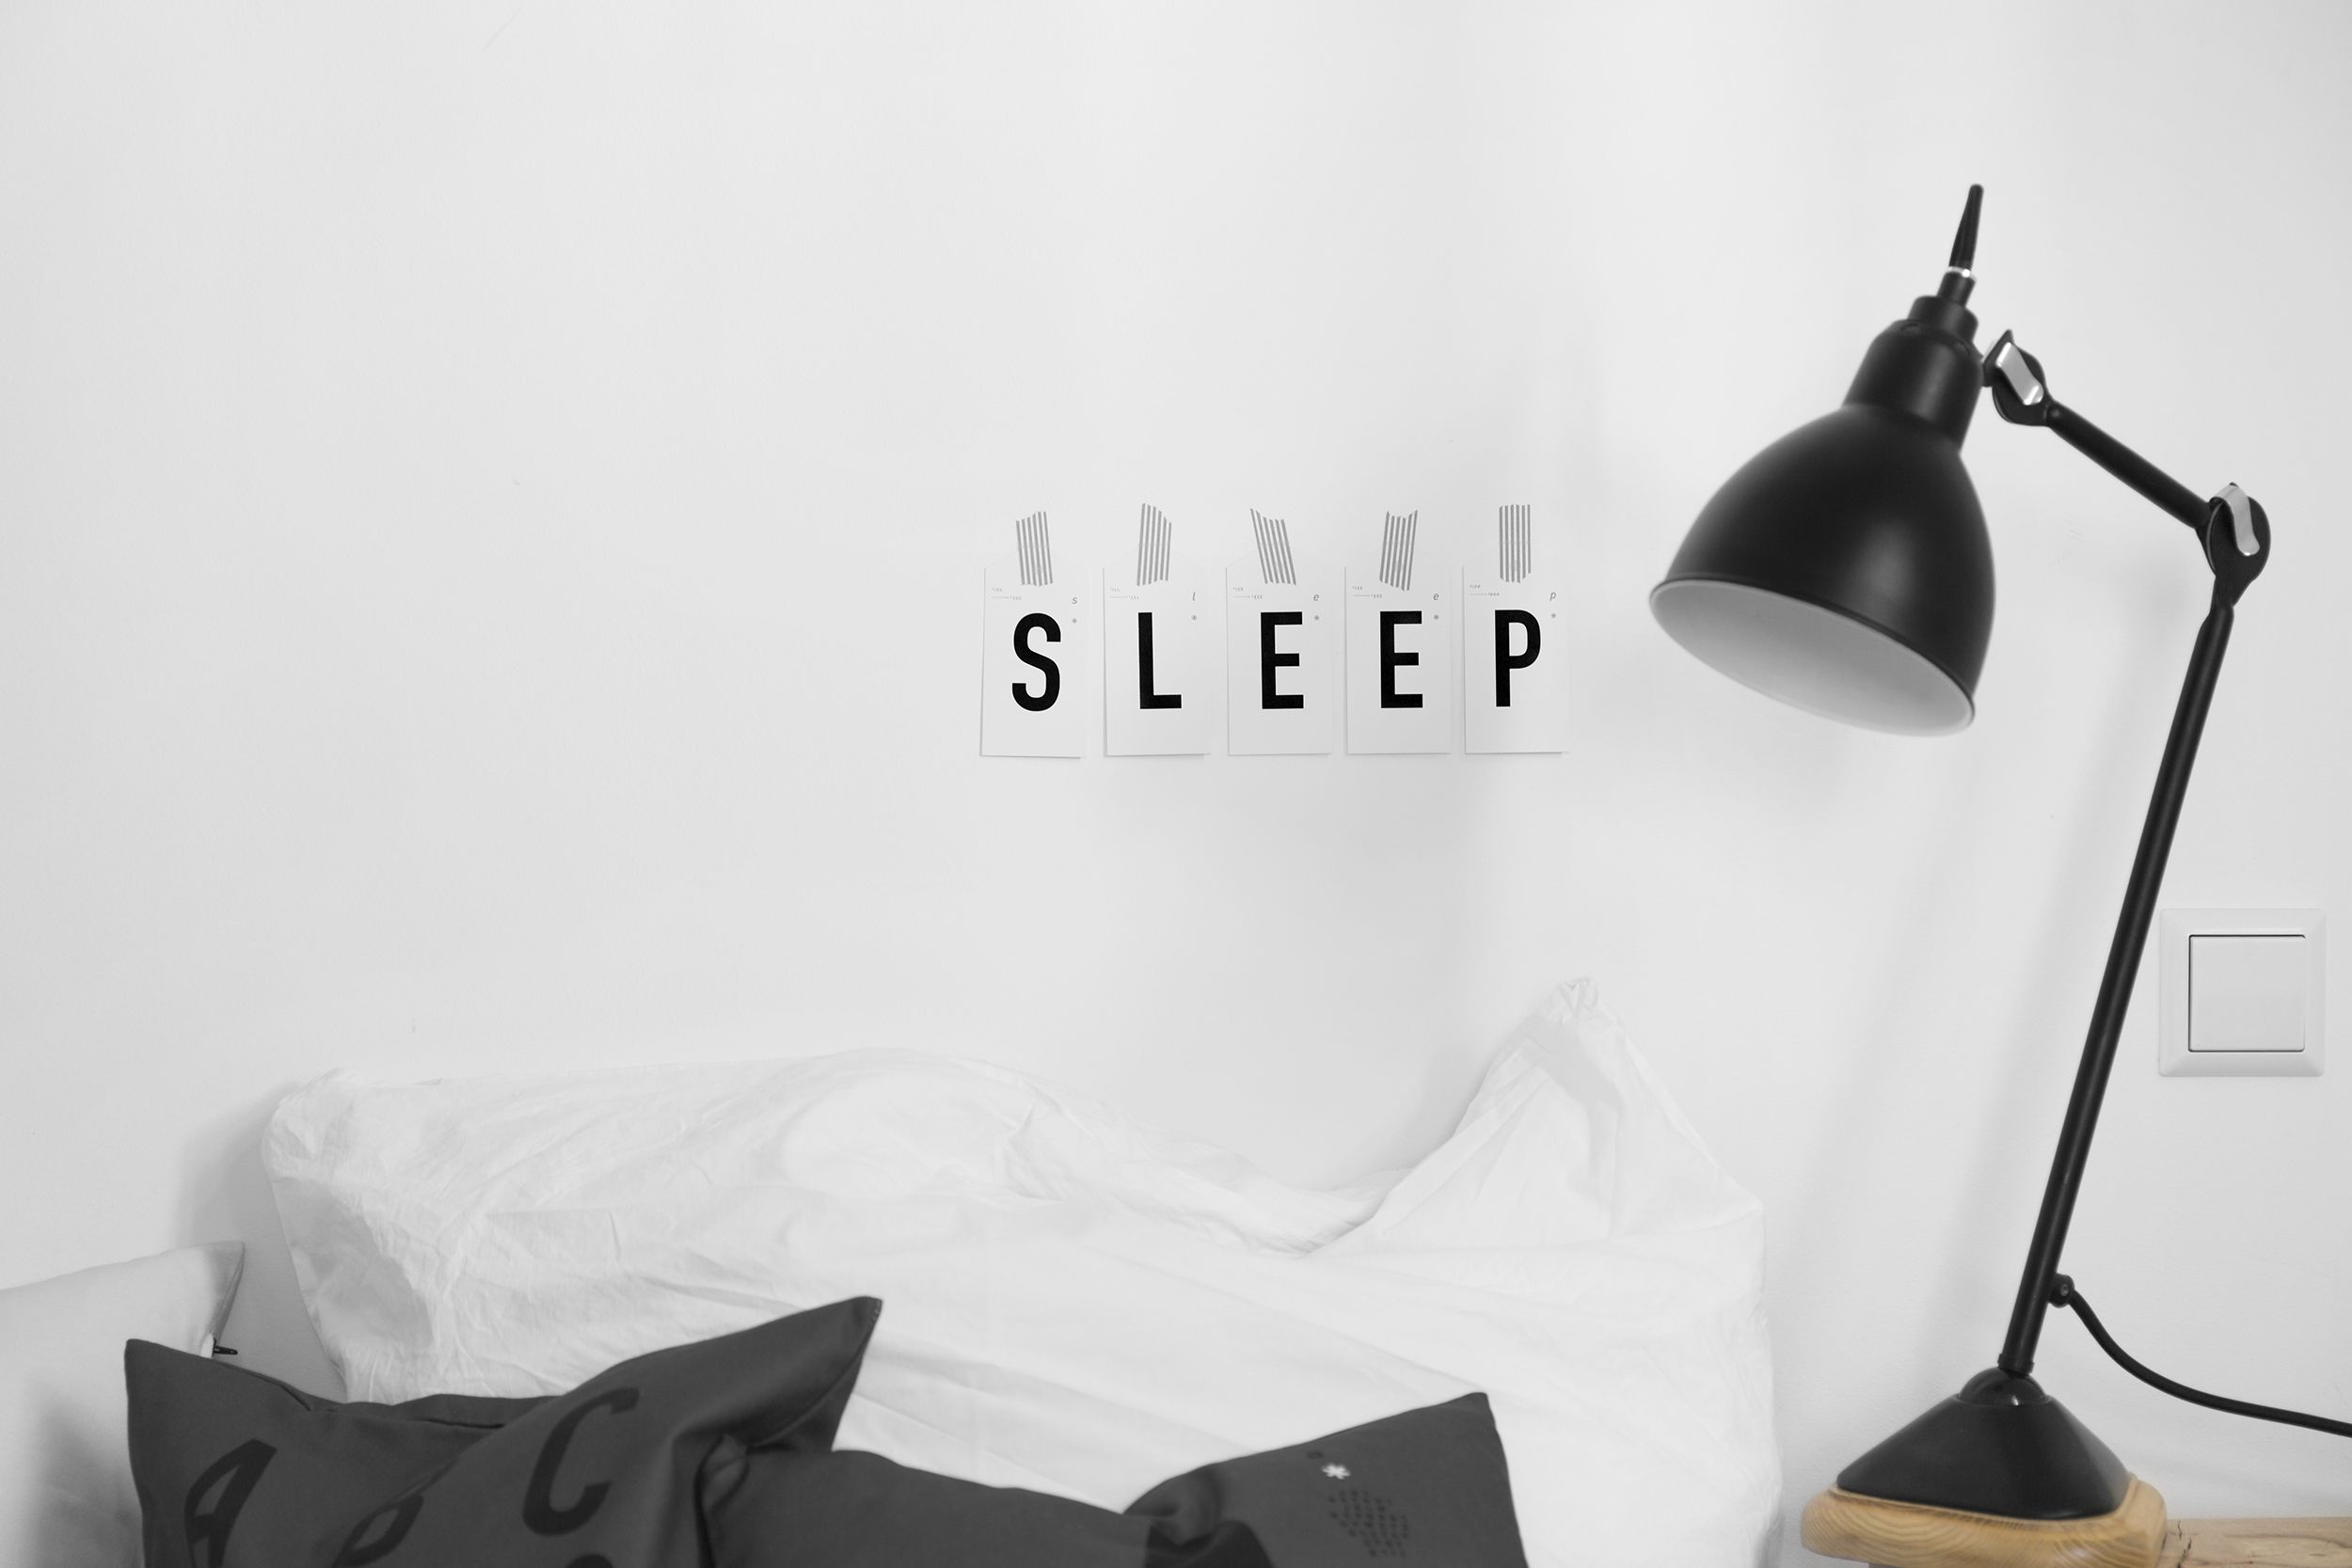 More sleep, please! Shop it now on www.typehype.com